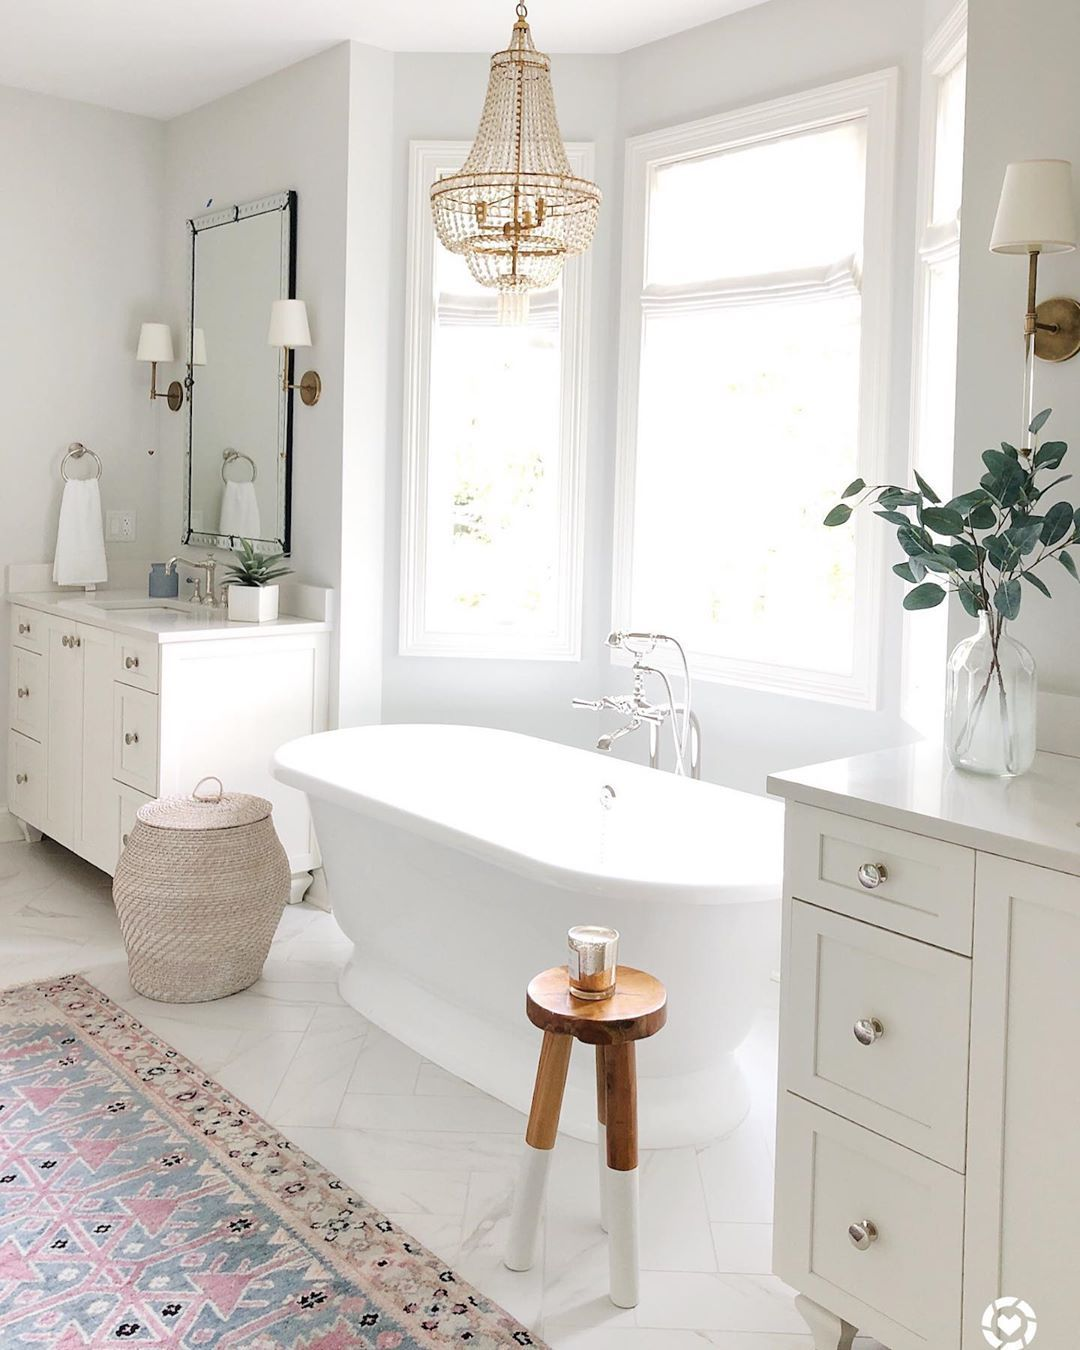 Friday Night Vibes Today On The Blog Link In Bio I Rounded Up My Best Selling In 2020 White Master Bathroom Free Standing Bath Tub Master Bathroom